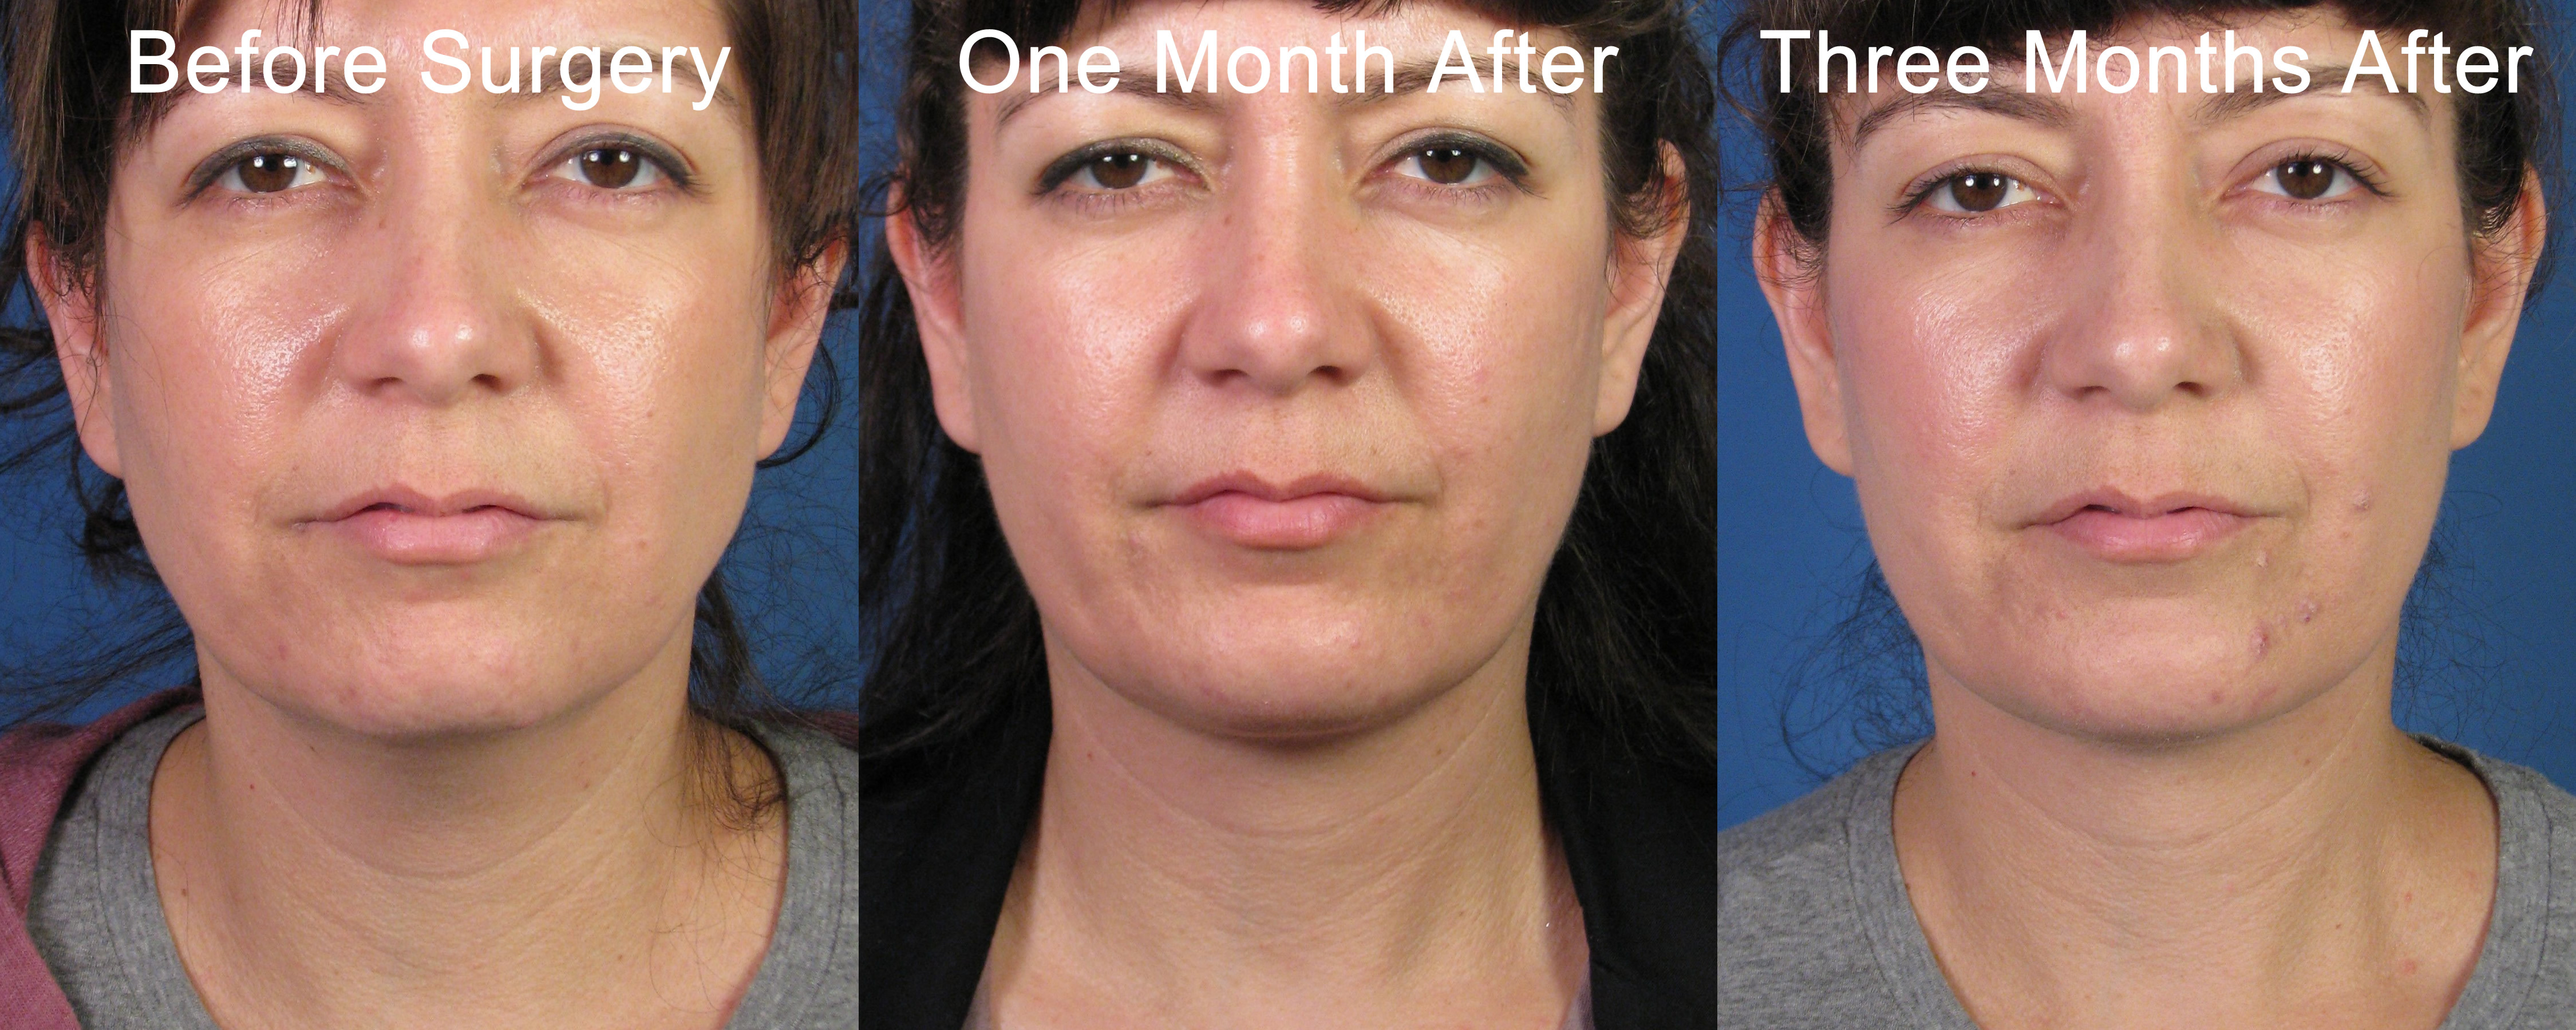 Cervical Liposuction And Neck Lipocontouring With Chin Implant